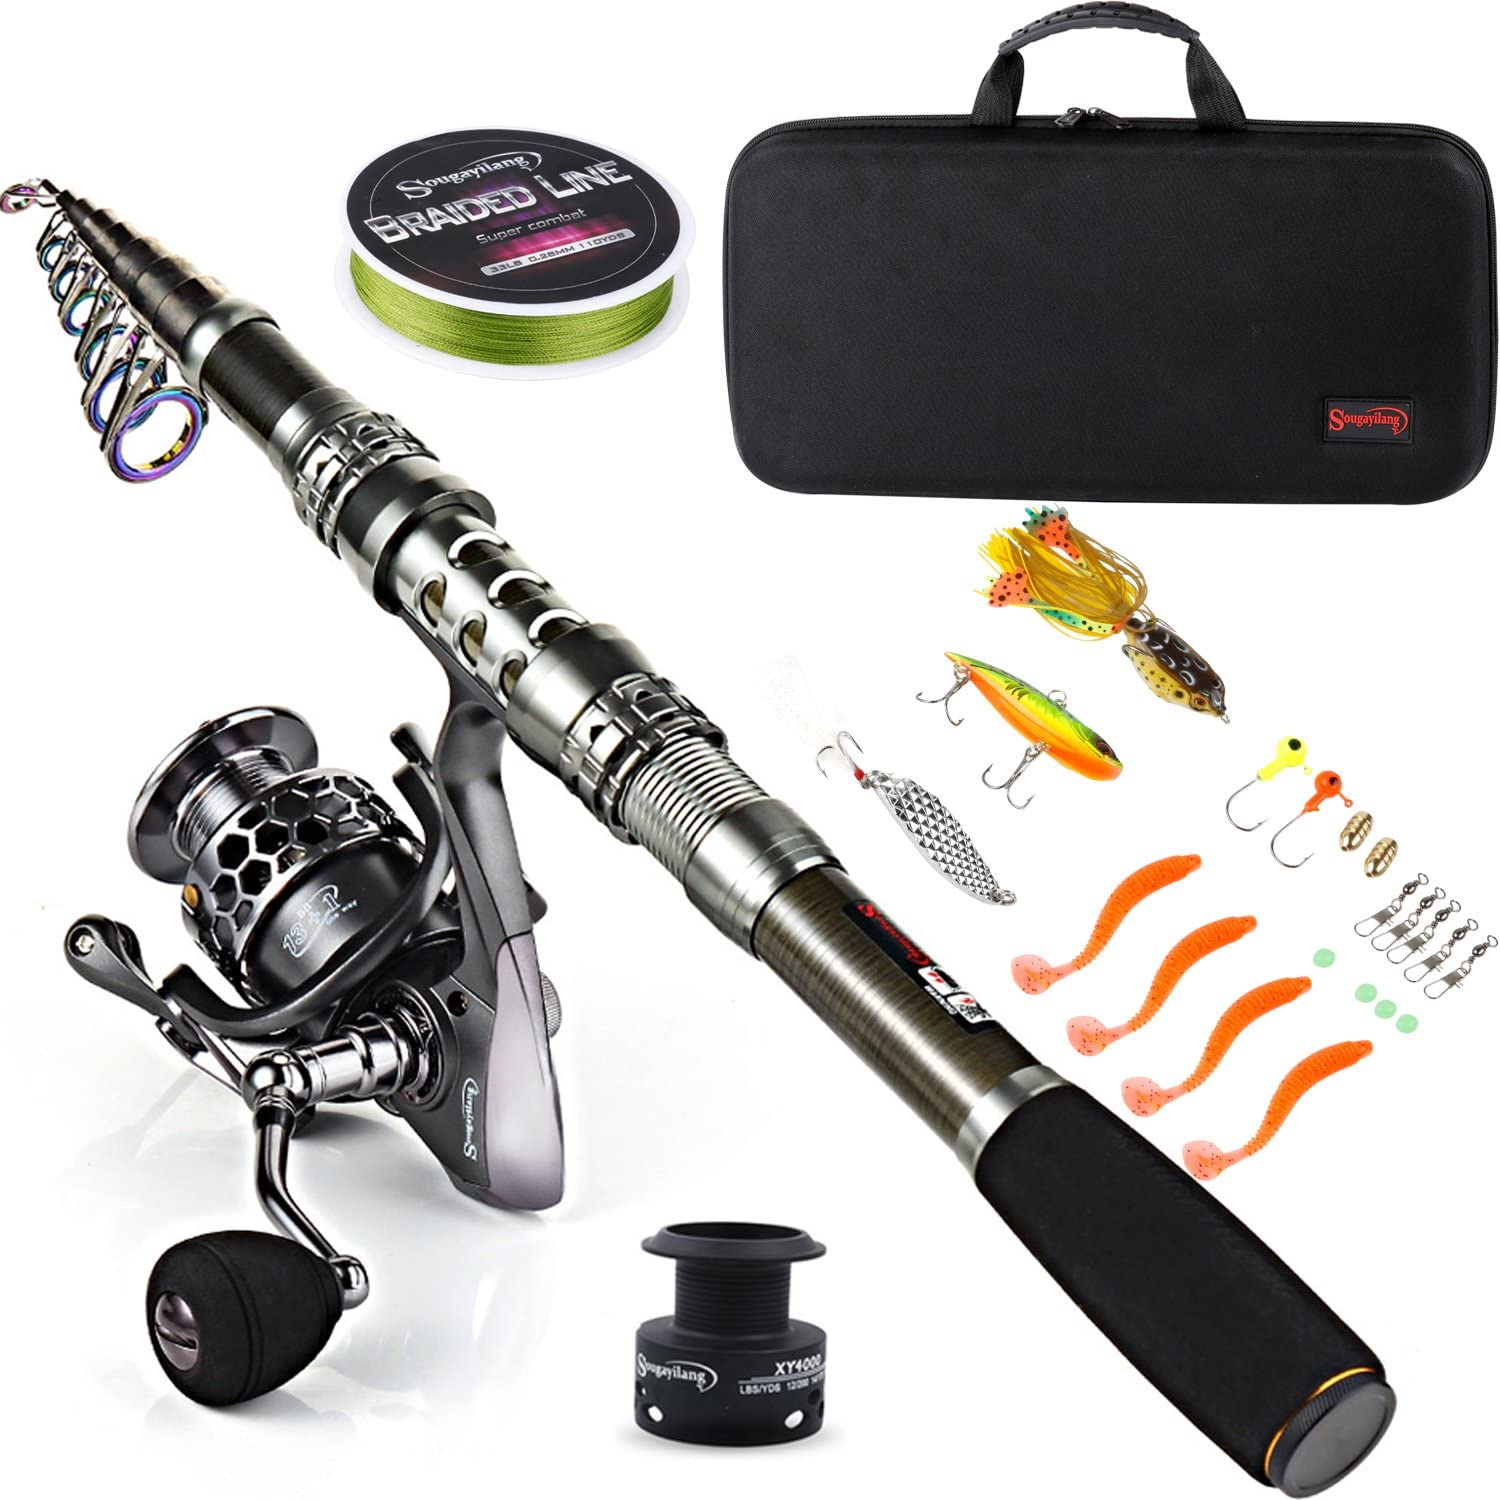 Top 10 Best Backpacking Fishing Poles/Rods In 2020 Reviews 9